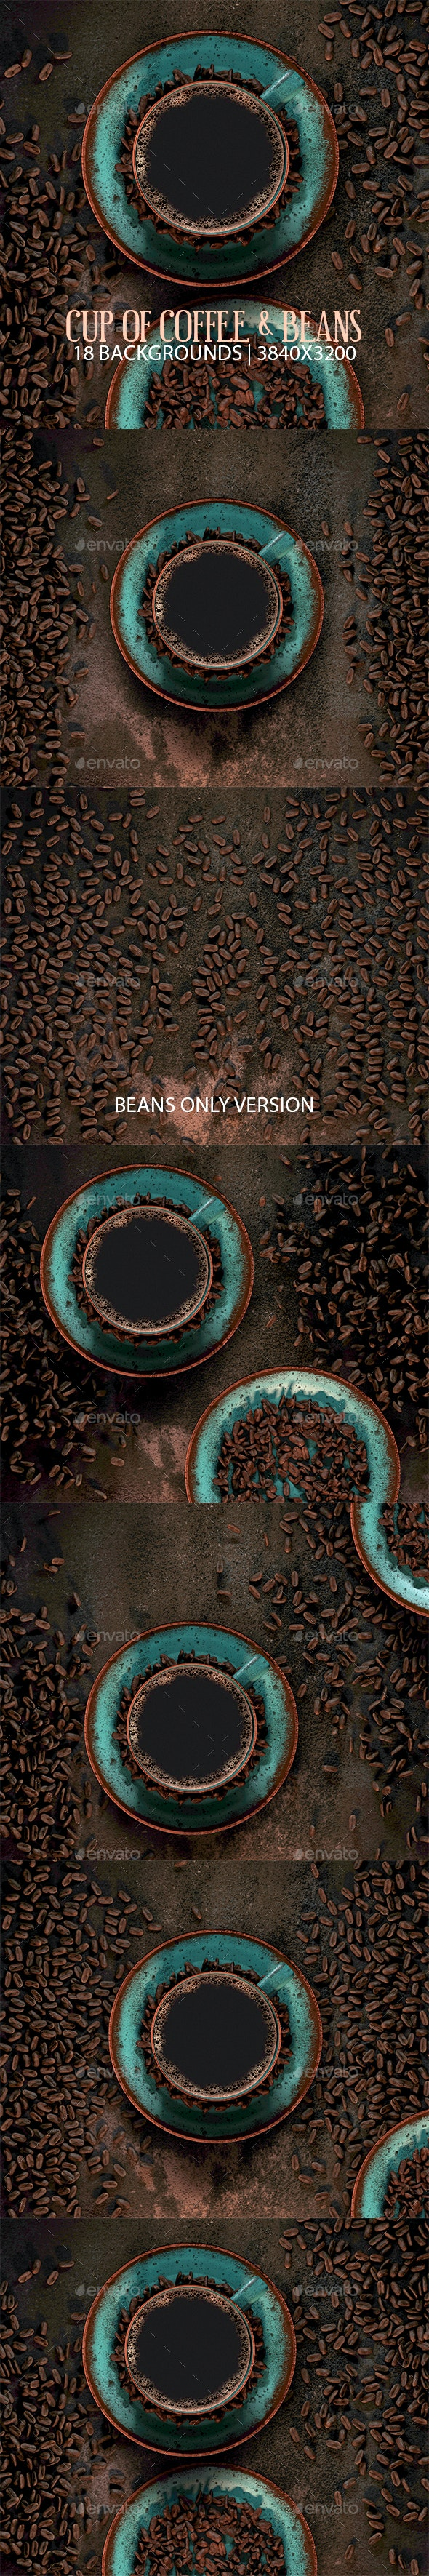 Cup of Coffee & Beans - 3D Backgrounds